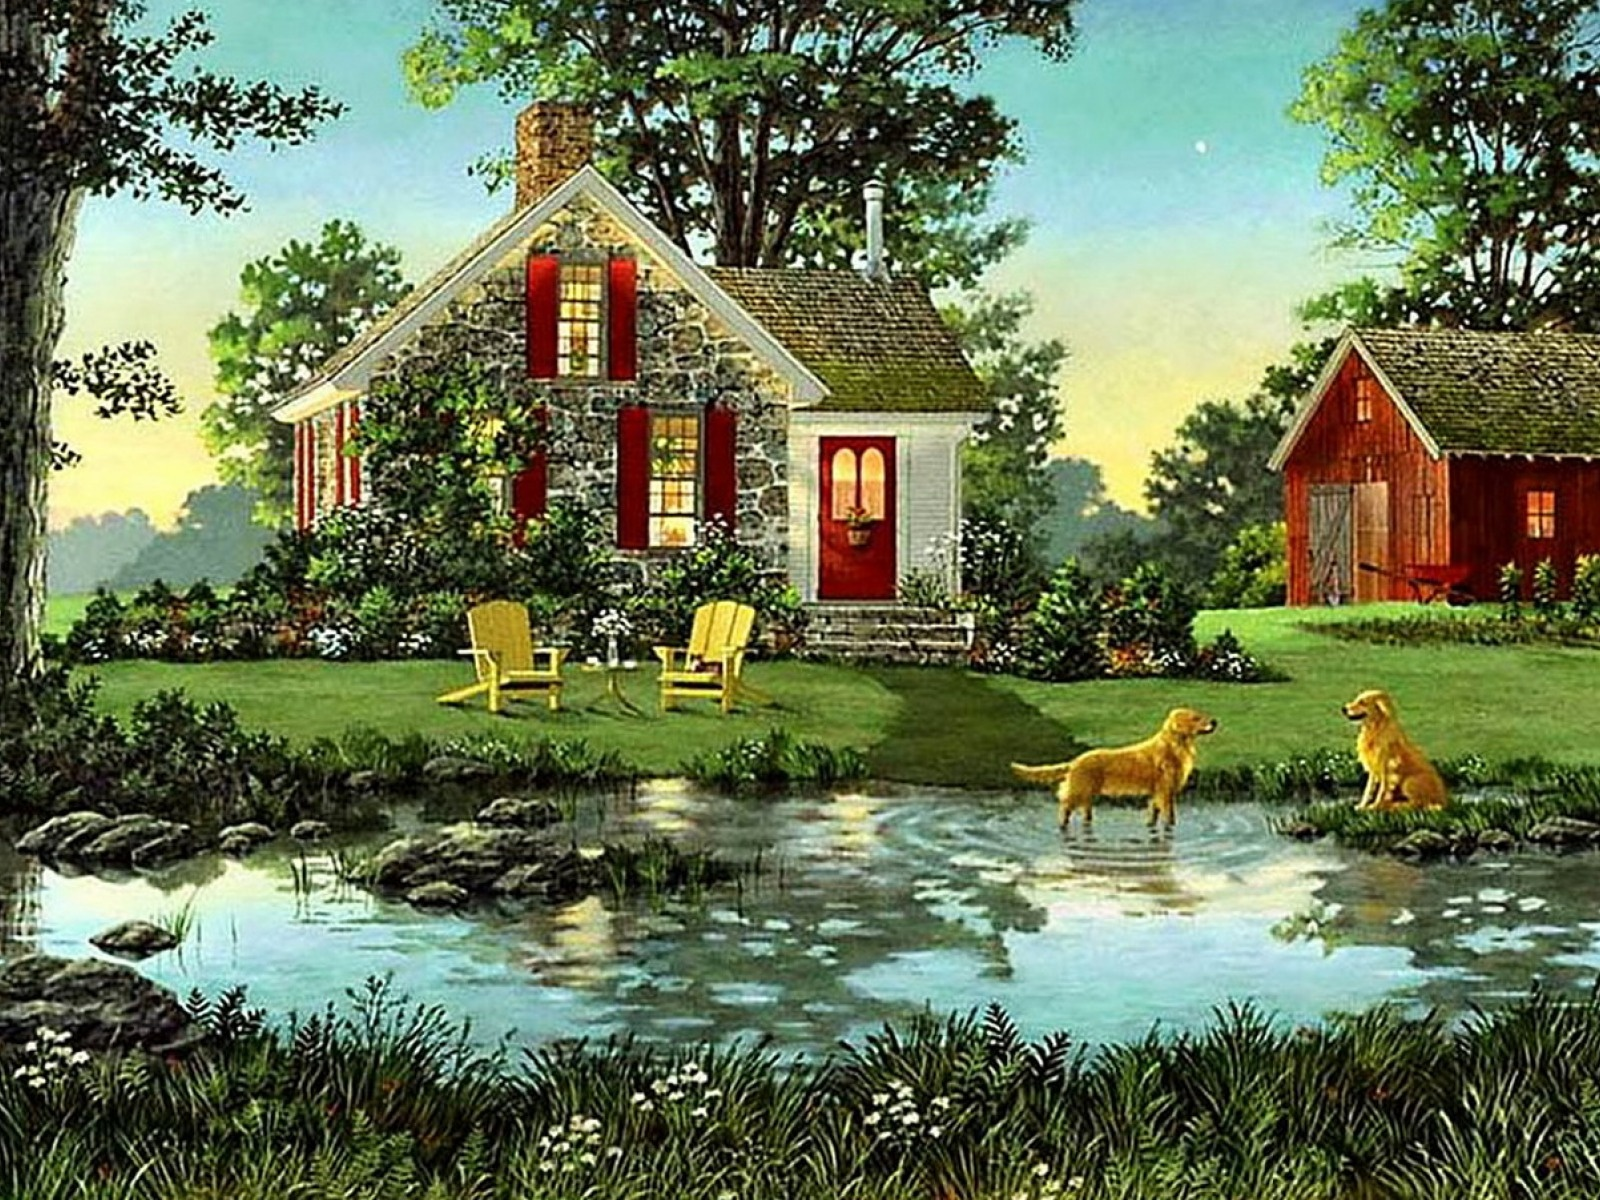 1500x500 house shed dogs pond nature twitter header photo - The pond house nature above all ...